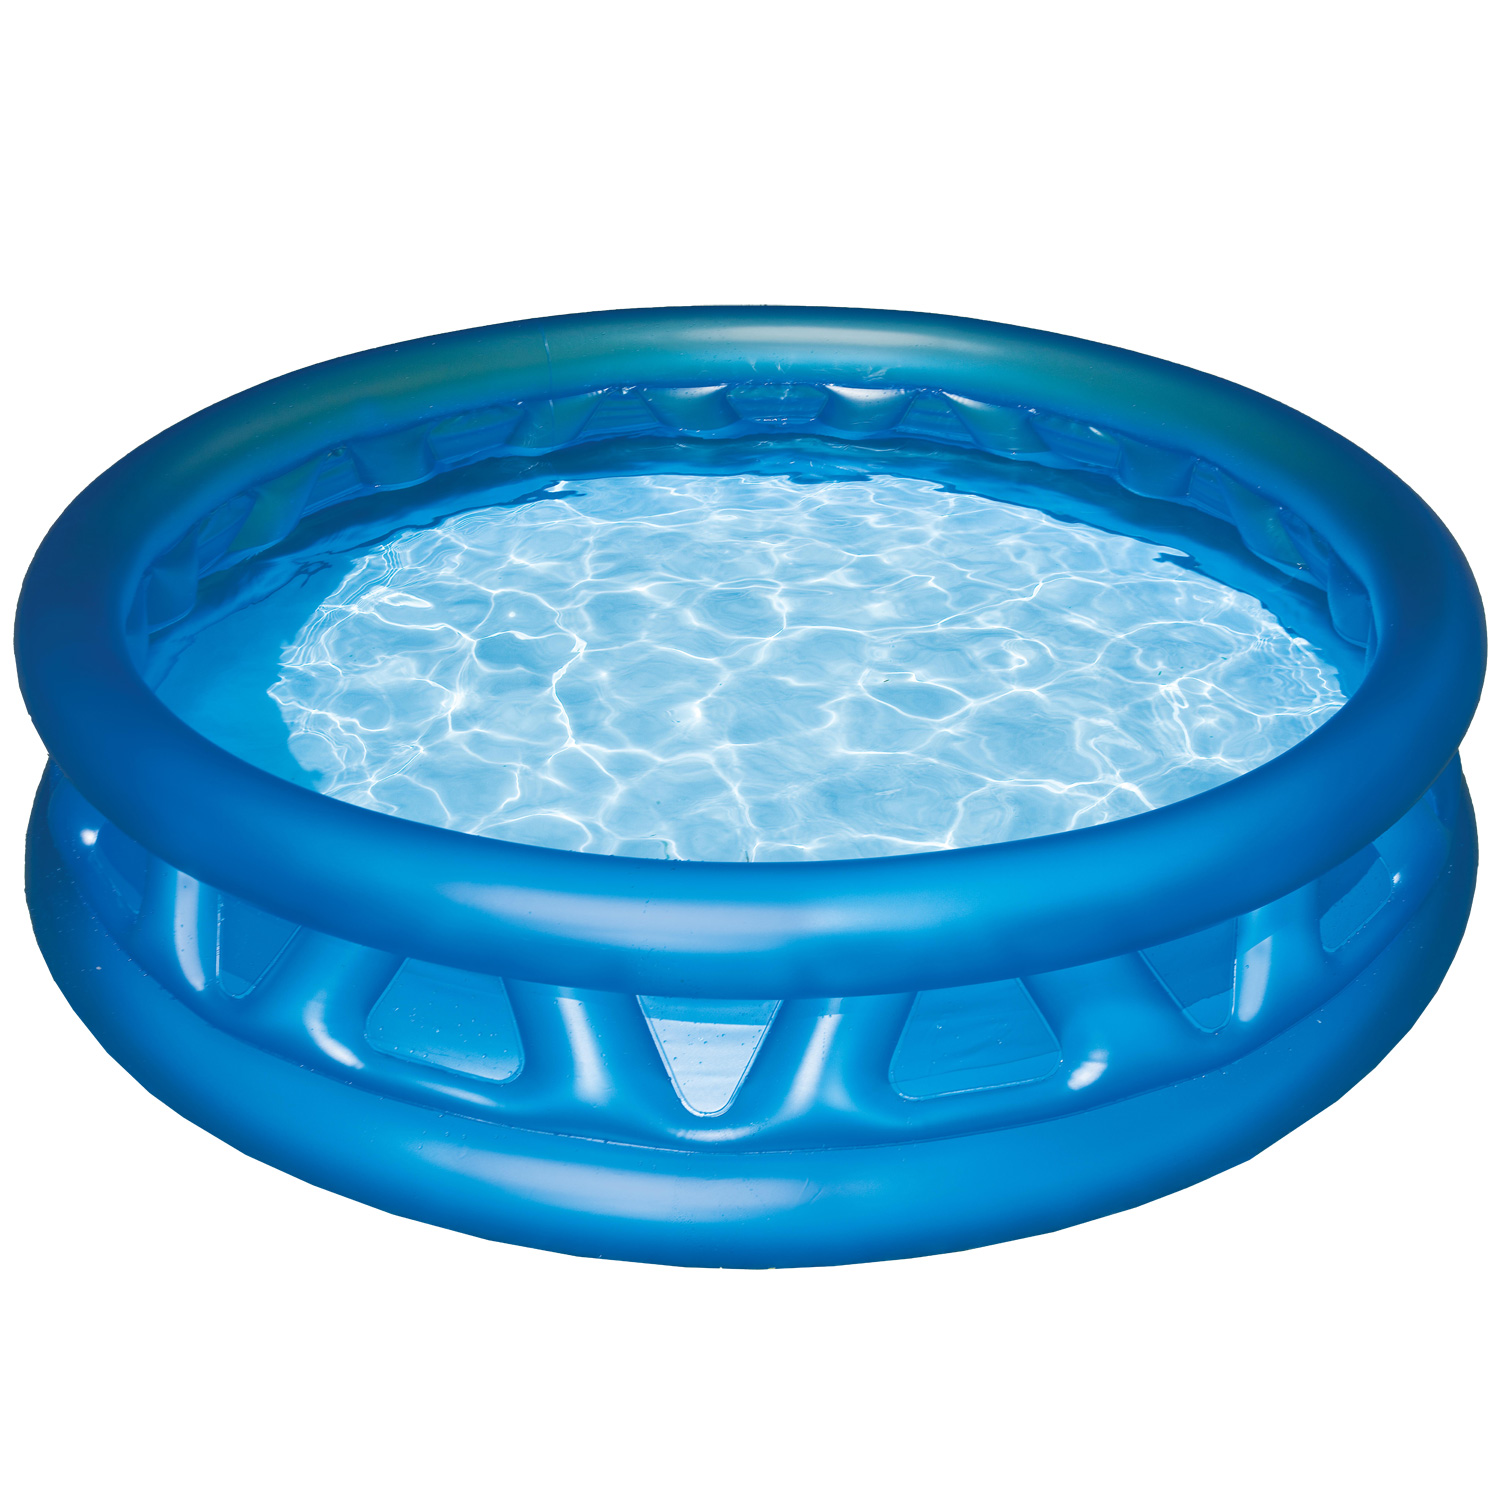 Piscine gonflable intex soft side pool raviday piscine for Catalogue piscine